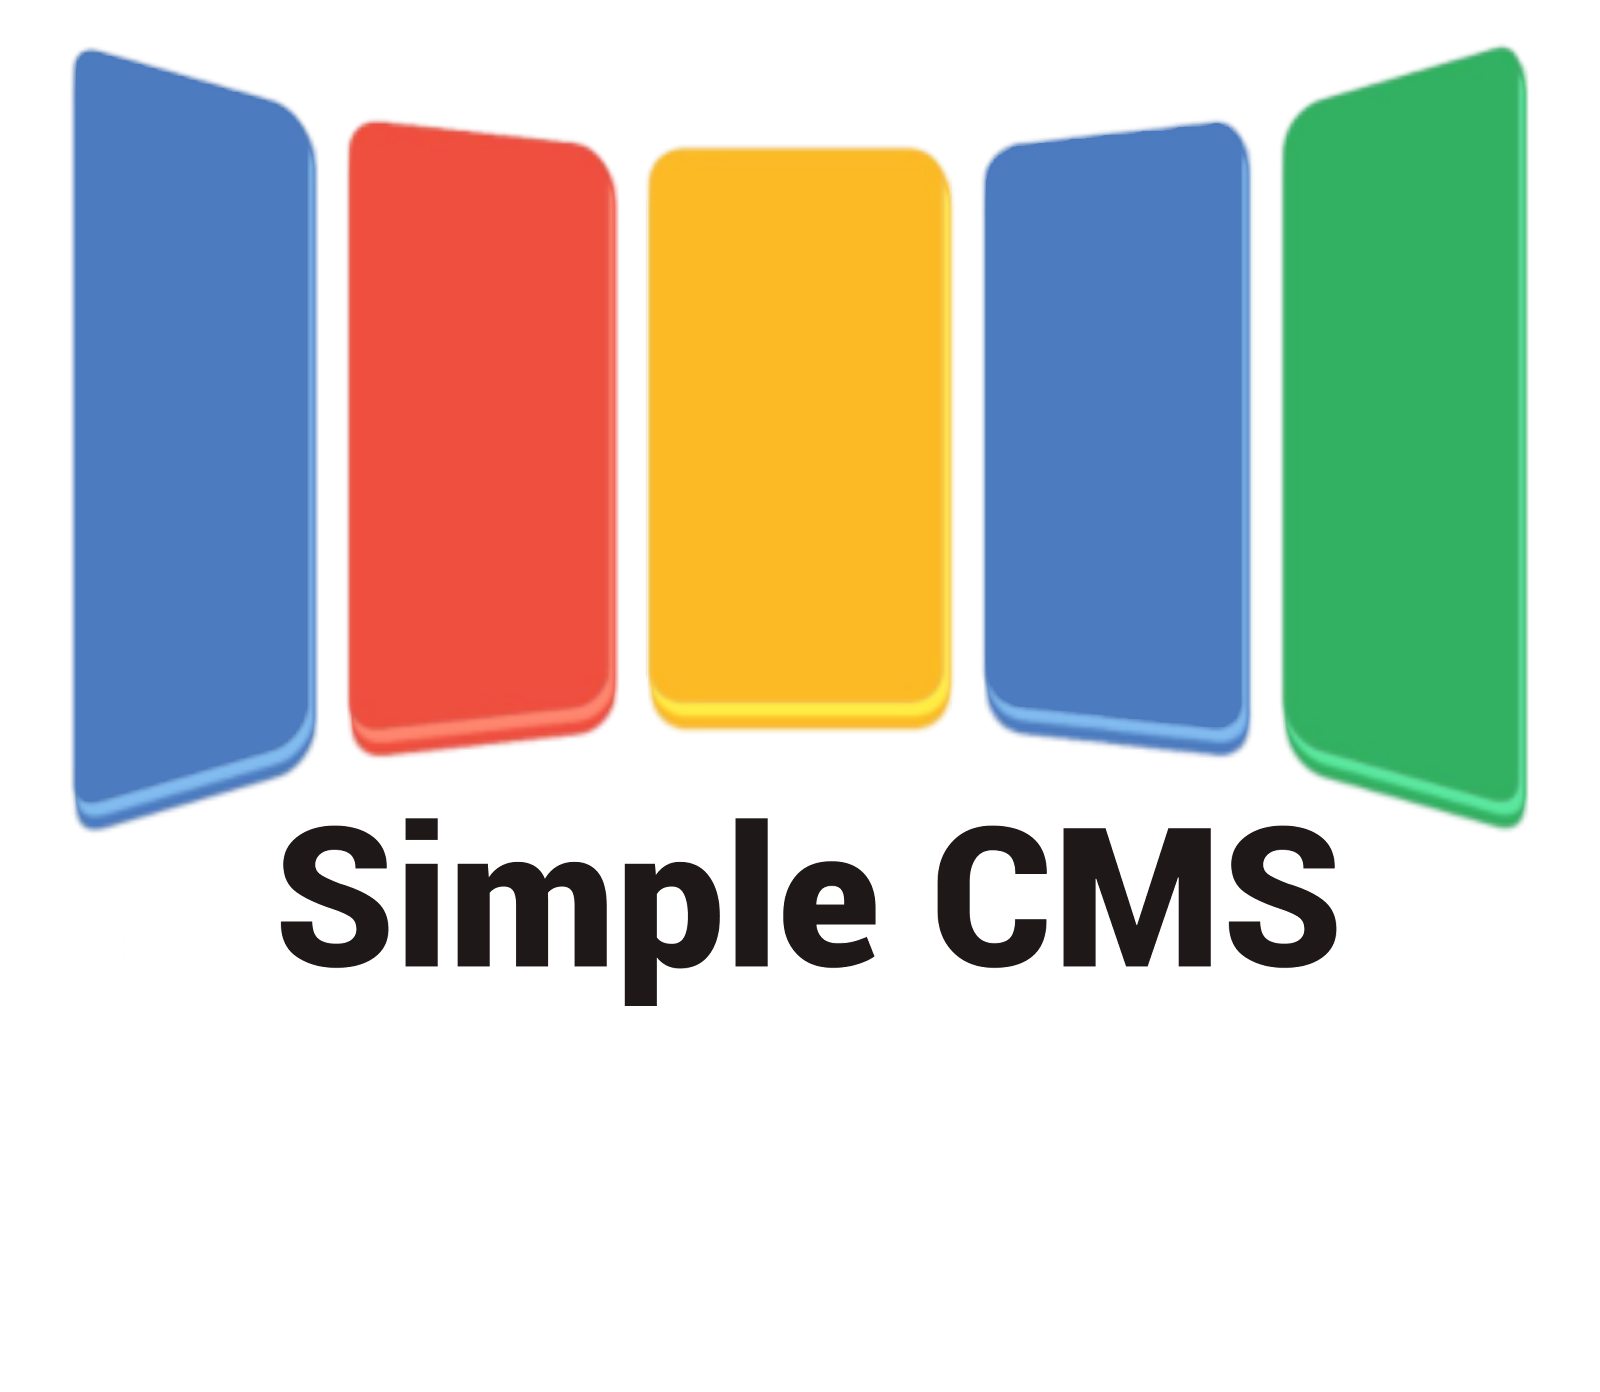 Simple CMS, Diego Rivero's new CMS for the Liquid Galaxy explained